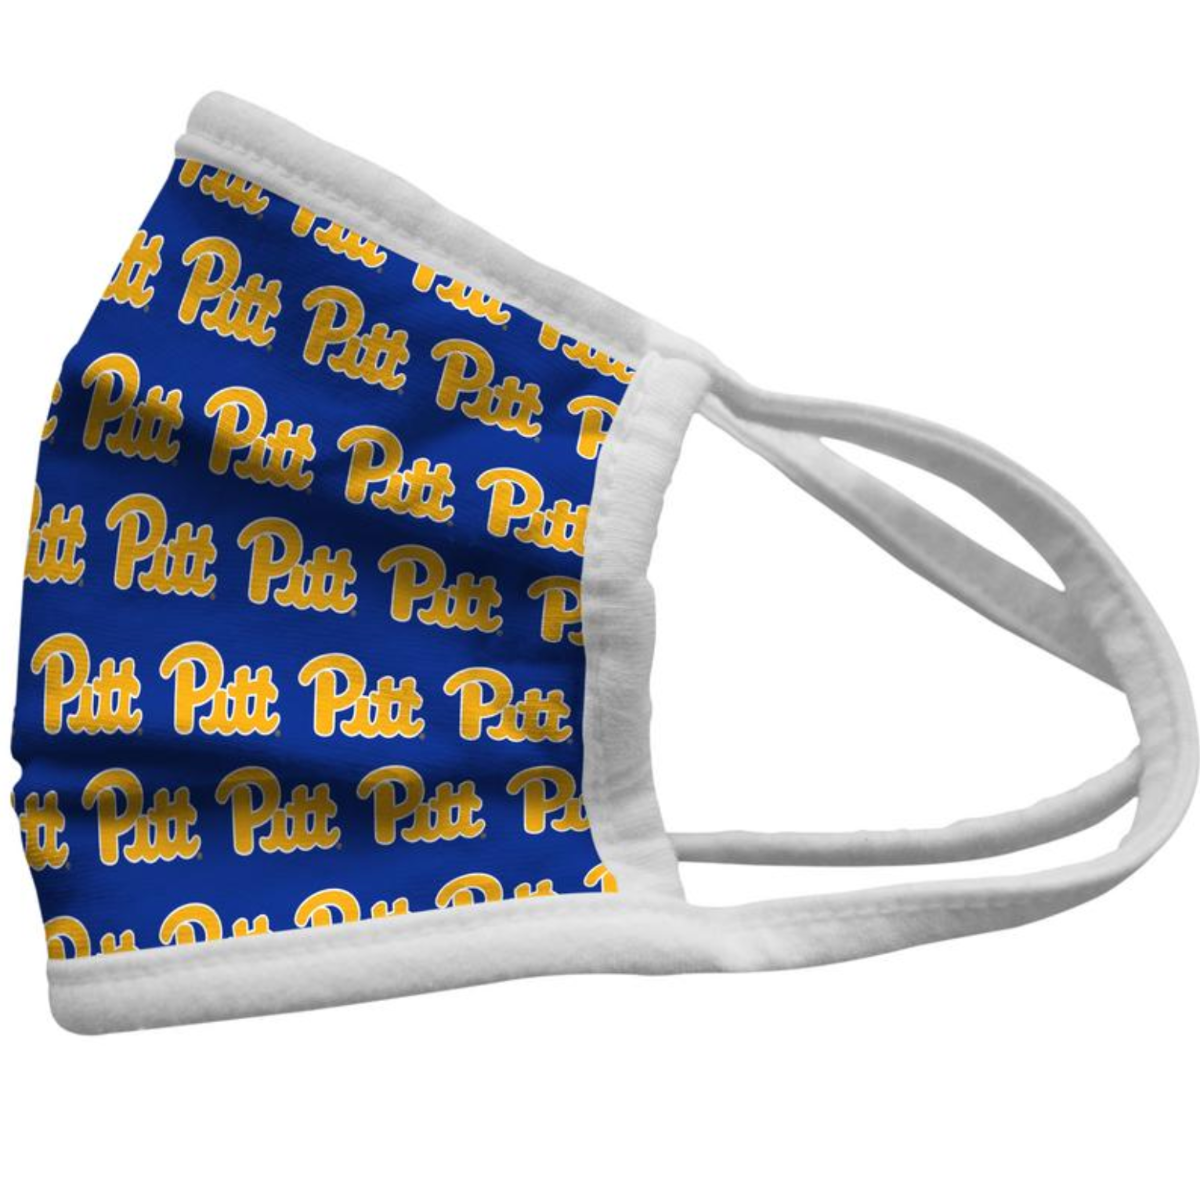 Pitt Panthers Pride Face Mask